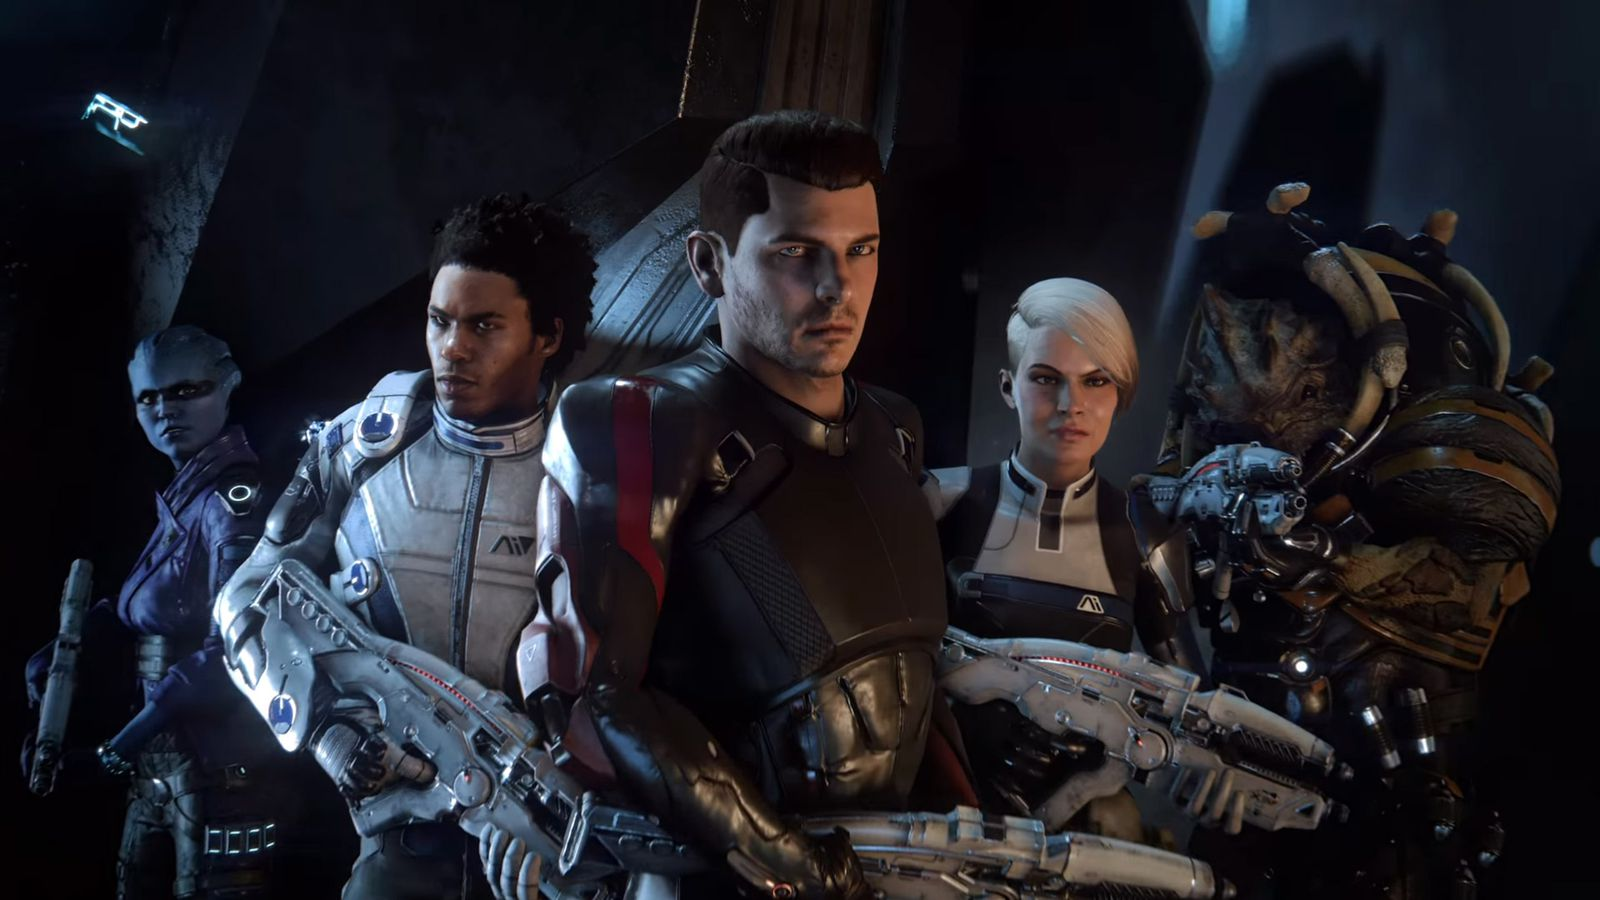 Mass Effect: Andromeda dev says game features 'full nudity,' says it's 'totally softcore space porn'